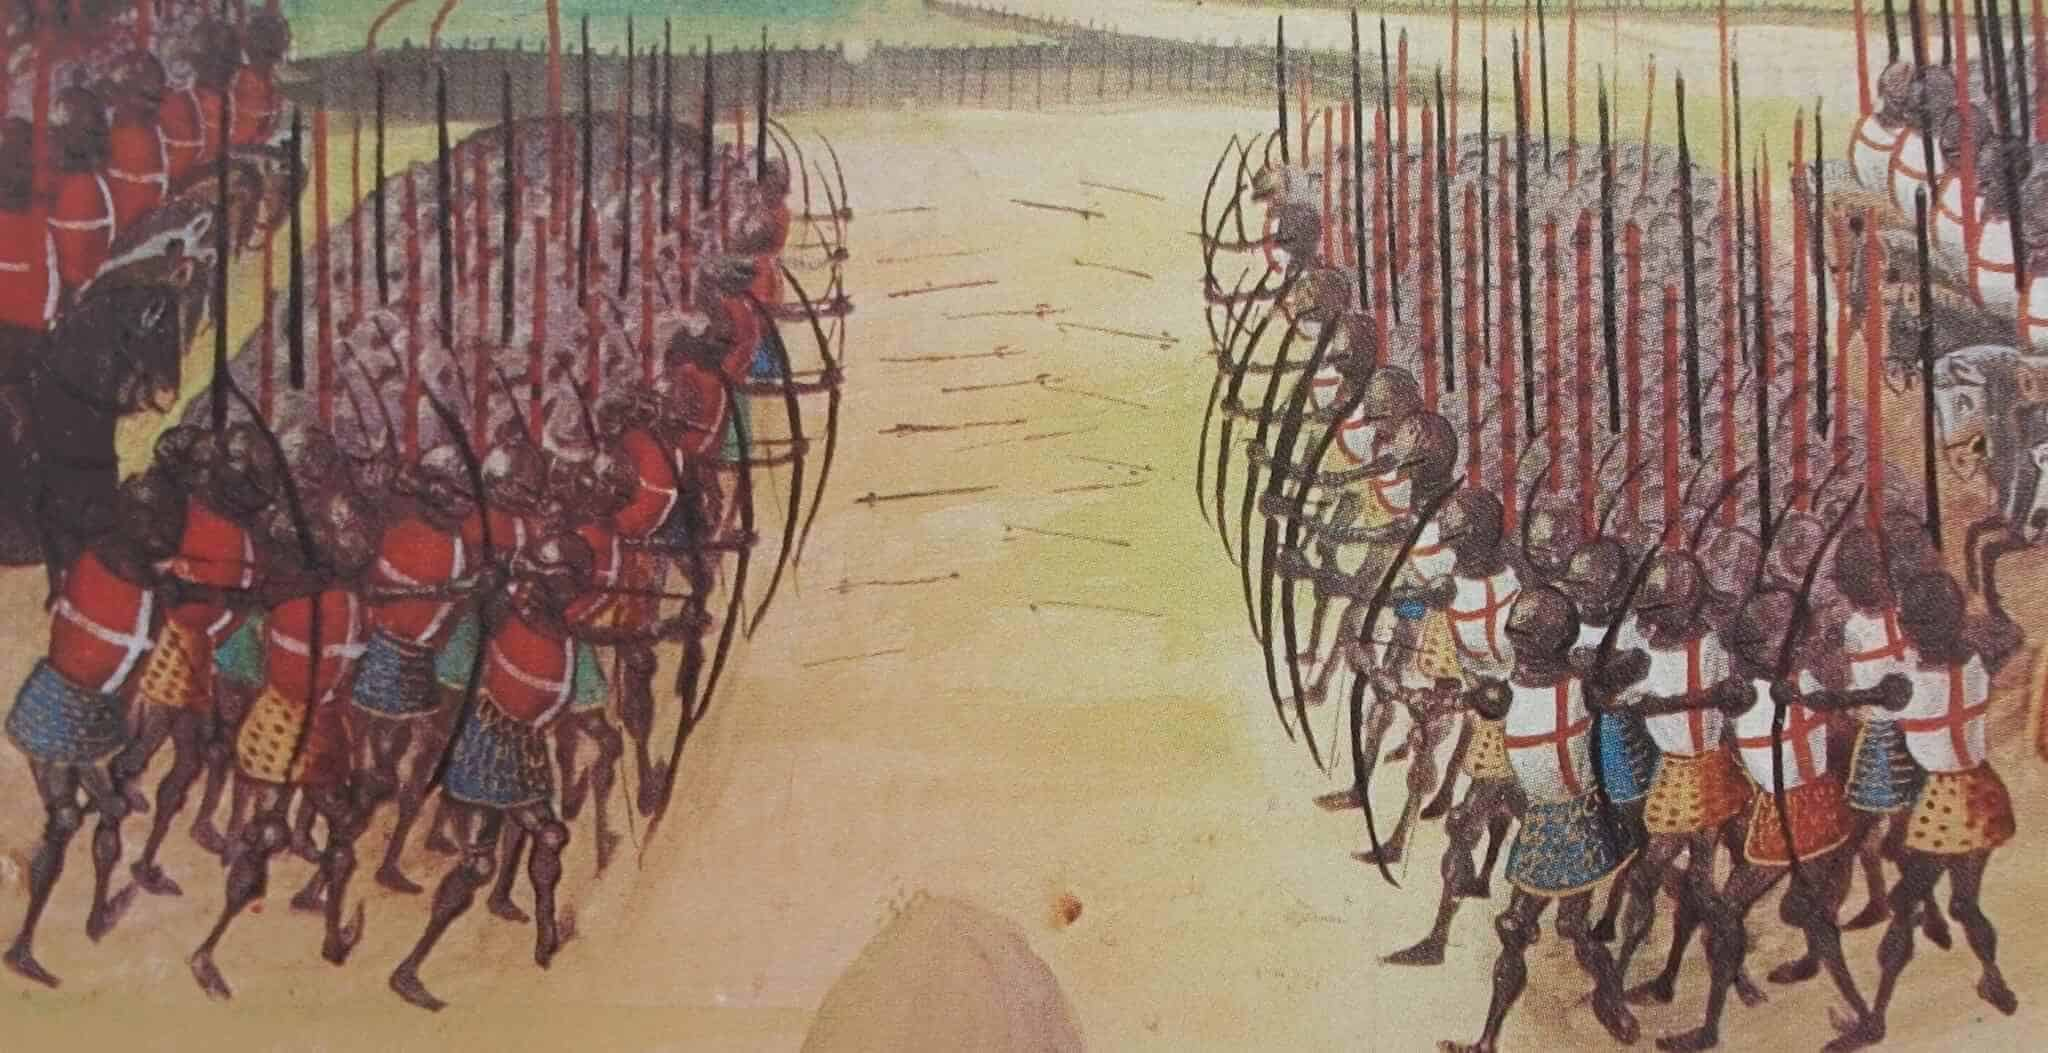 Longbows were the great symbol of the English military supremacy, but by the dawn of the 16th century, they were also a symbol of England's inferior sophistication. How could English kings advance? Only by swapping the bow for the gun, so let's find out how they did it…